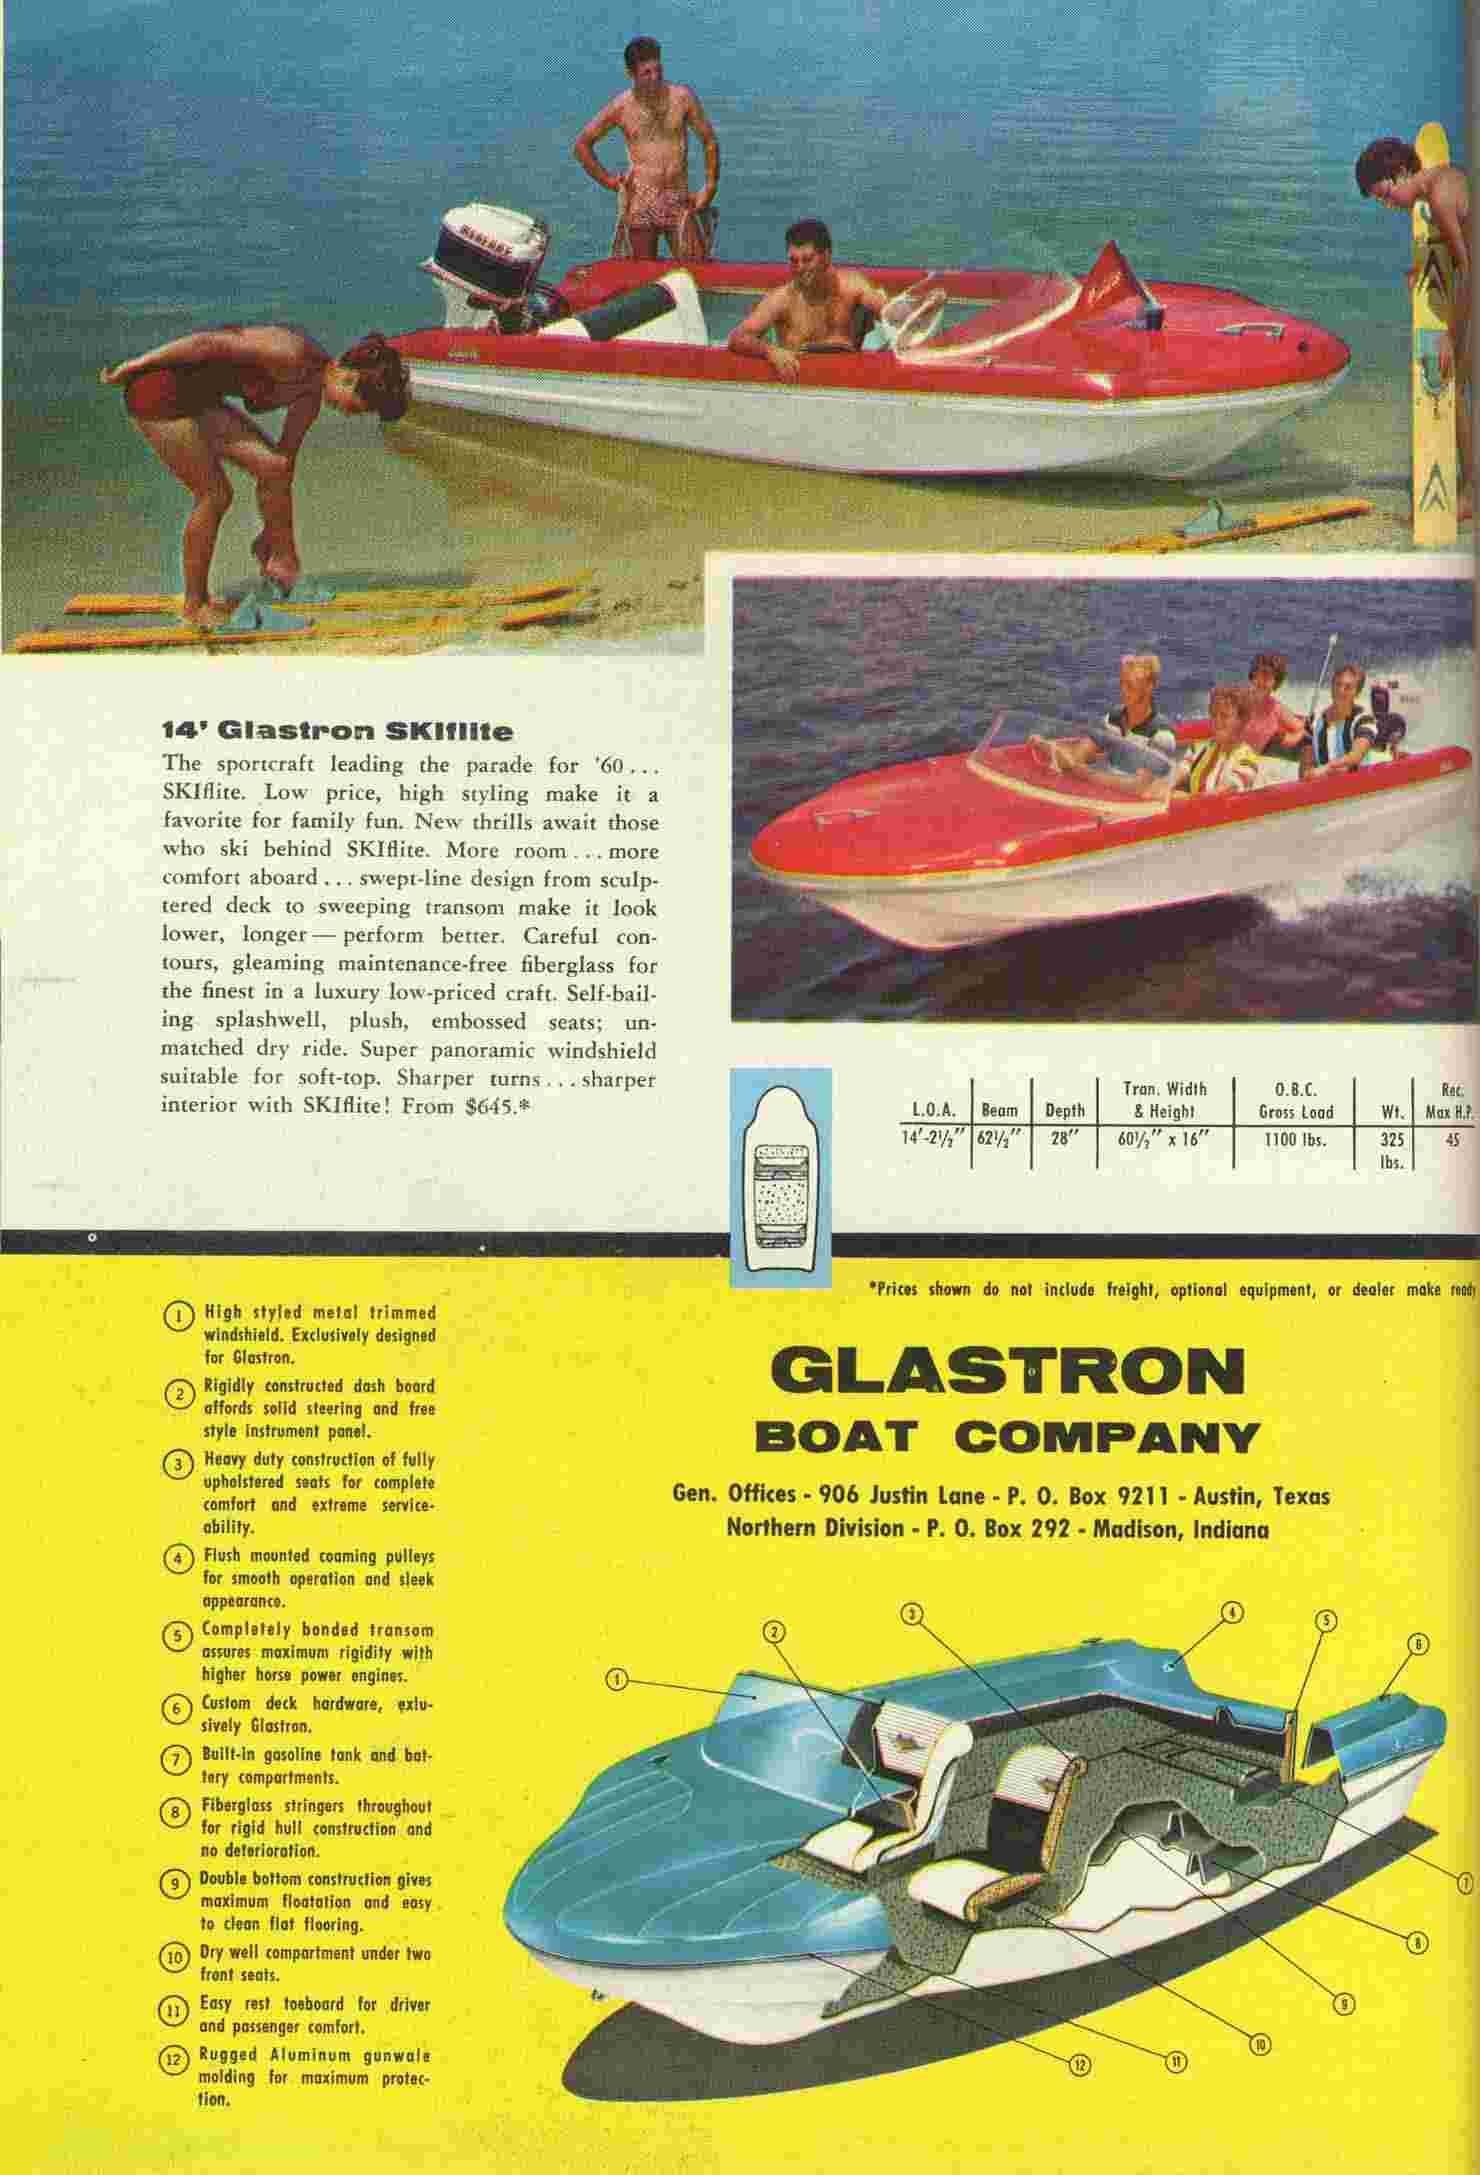 1960 Glastron Advertising Supplement pg. 4